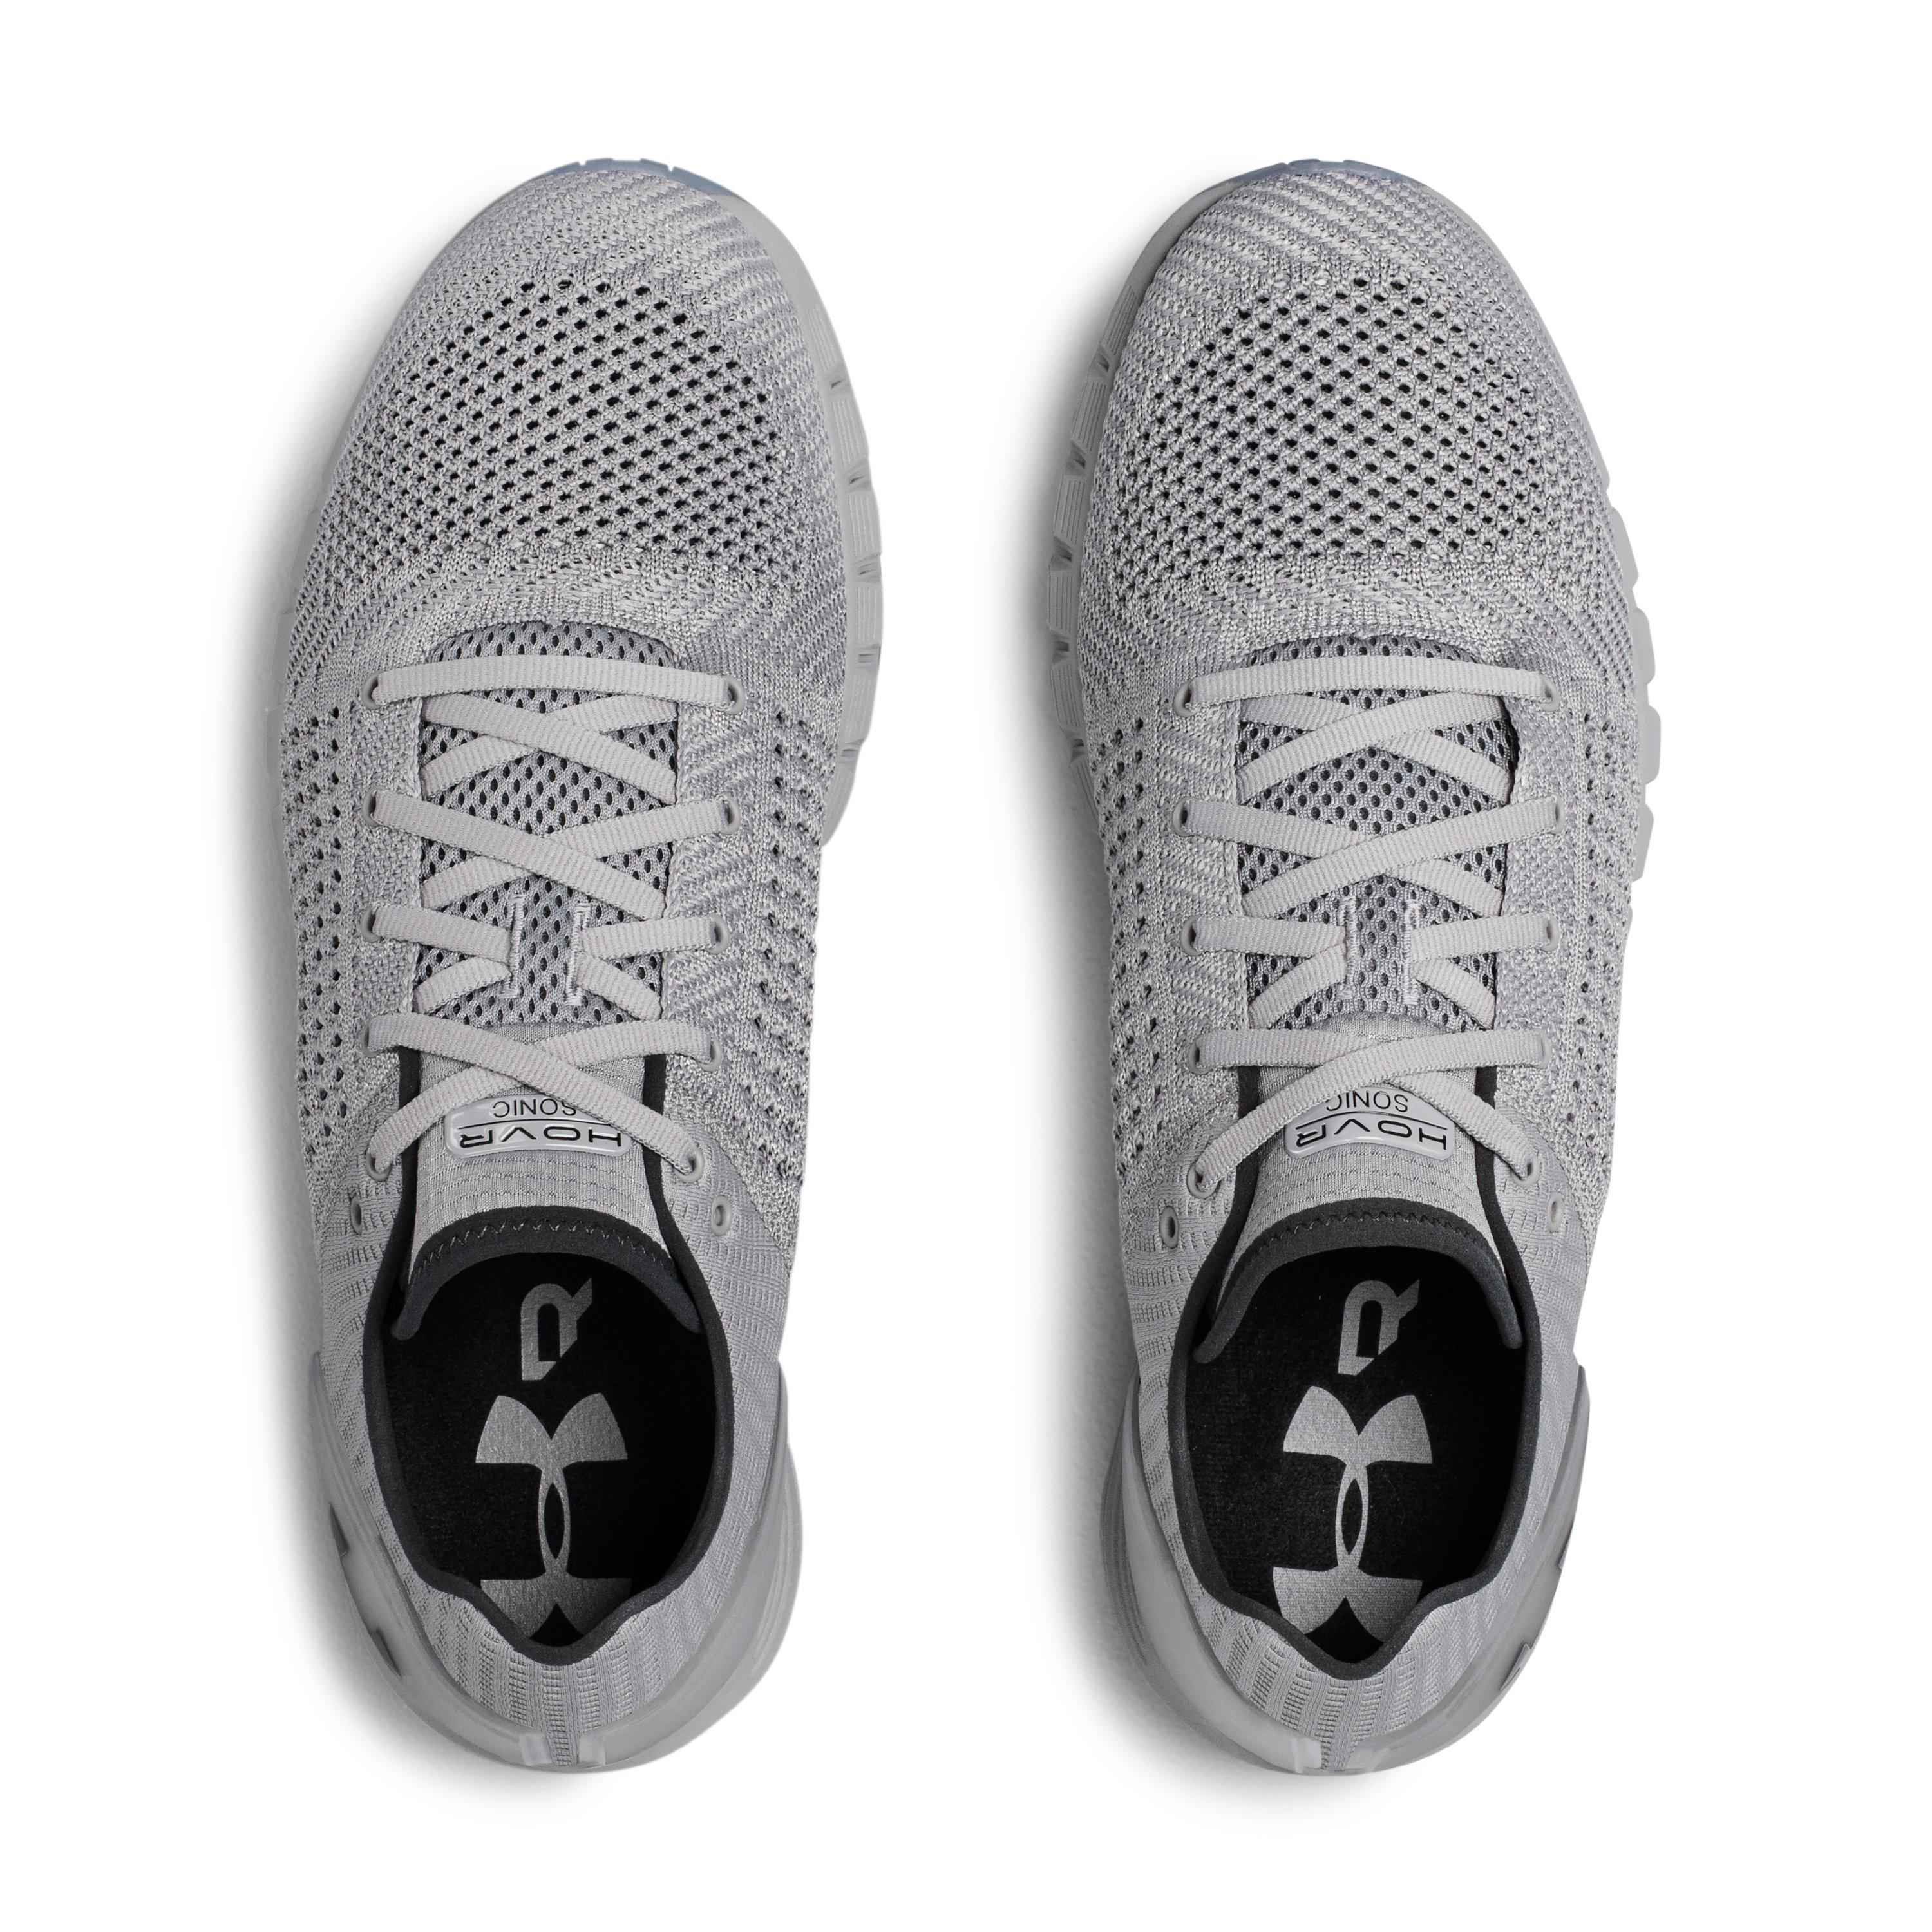 huge selection of 3d4e9 39f6f Under Armour Gray Men's Ua Hovr Sonic Connected Running Shoes for men